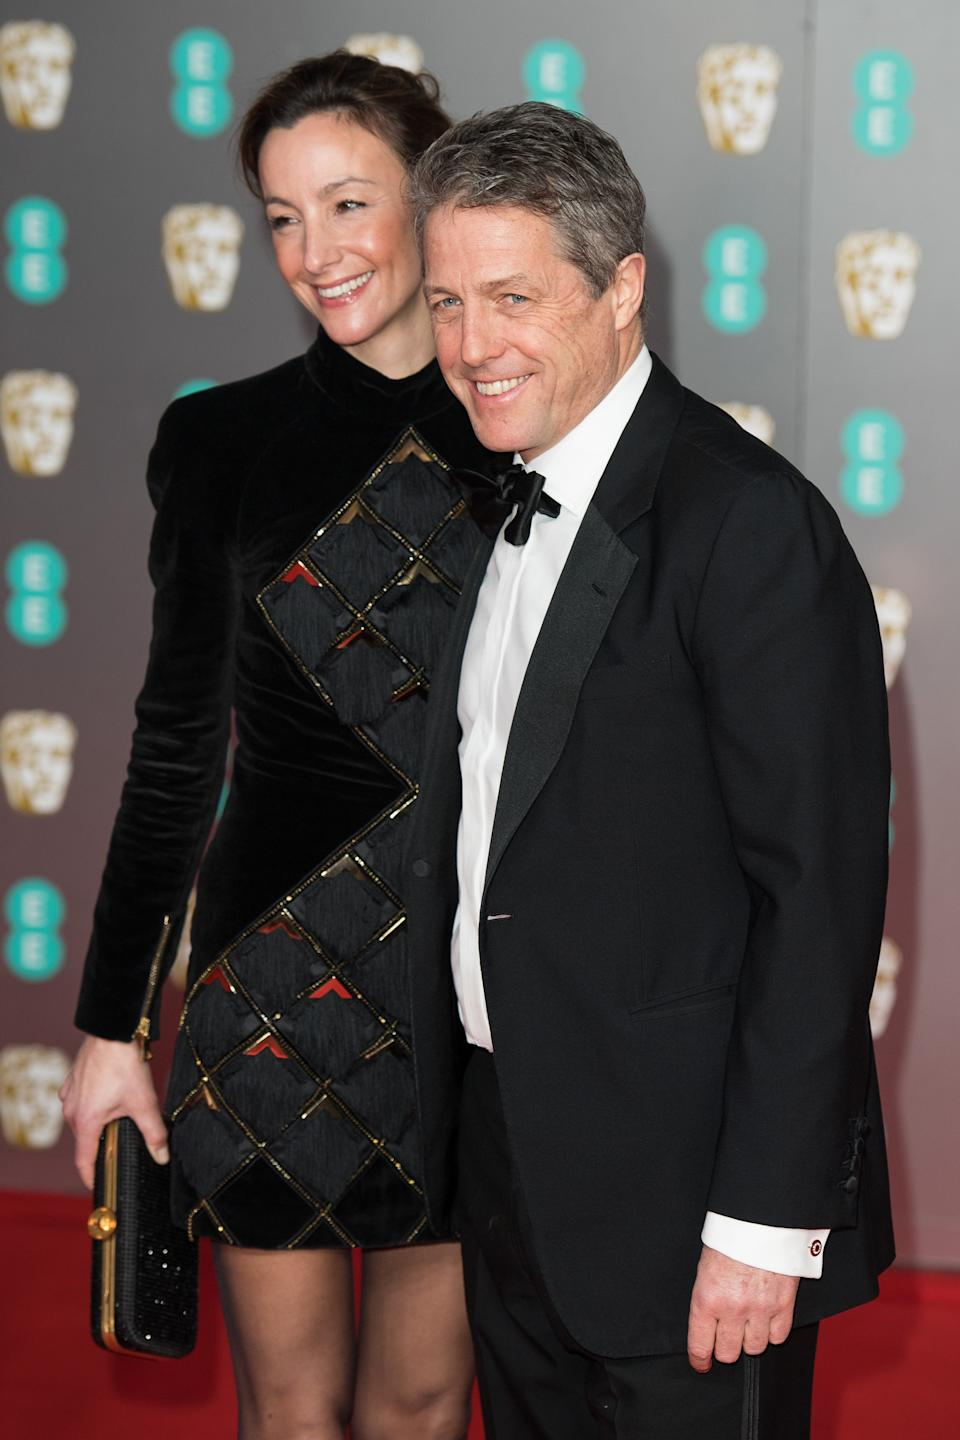 LONDON, ENGLAND - FEBRUARY 02: (L-R) Anna Elisabet Eberstein and Hugh Grant attend the EE British Academy Film Awards 2020 at Royal Albert Hall on February 02, 2020 in London, England. (Photo by Jeff Spicer/Getty Images)